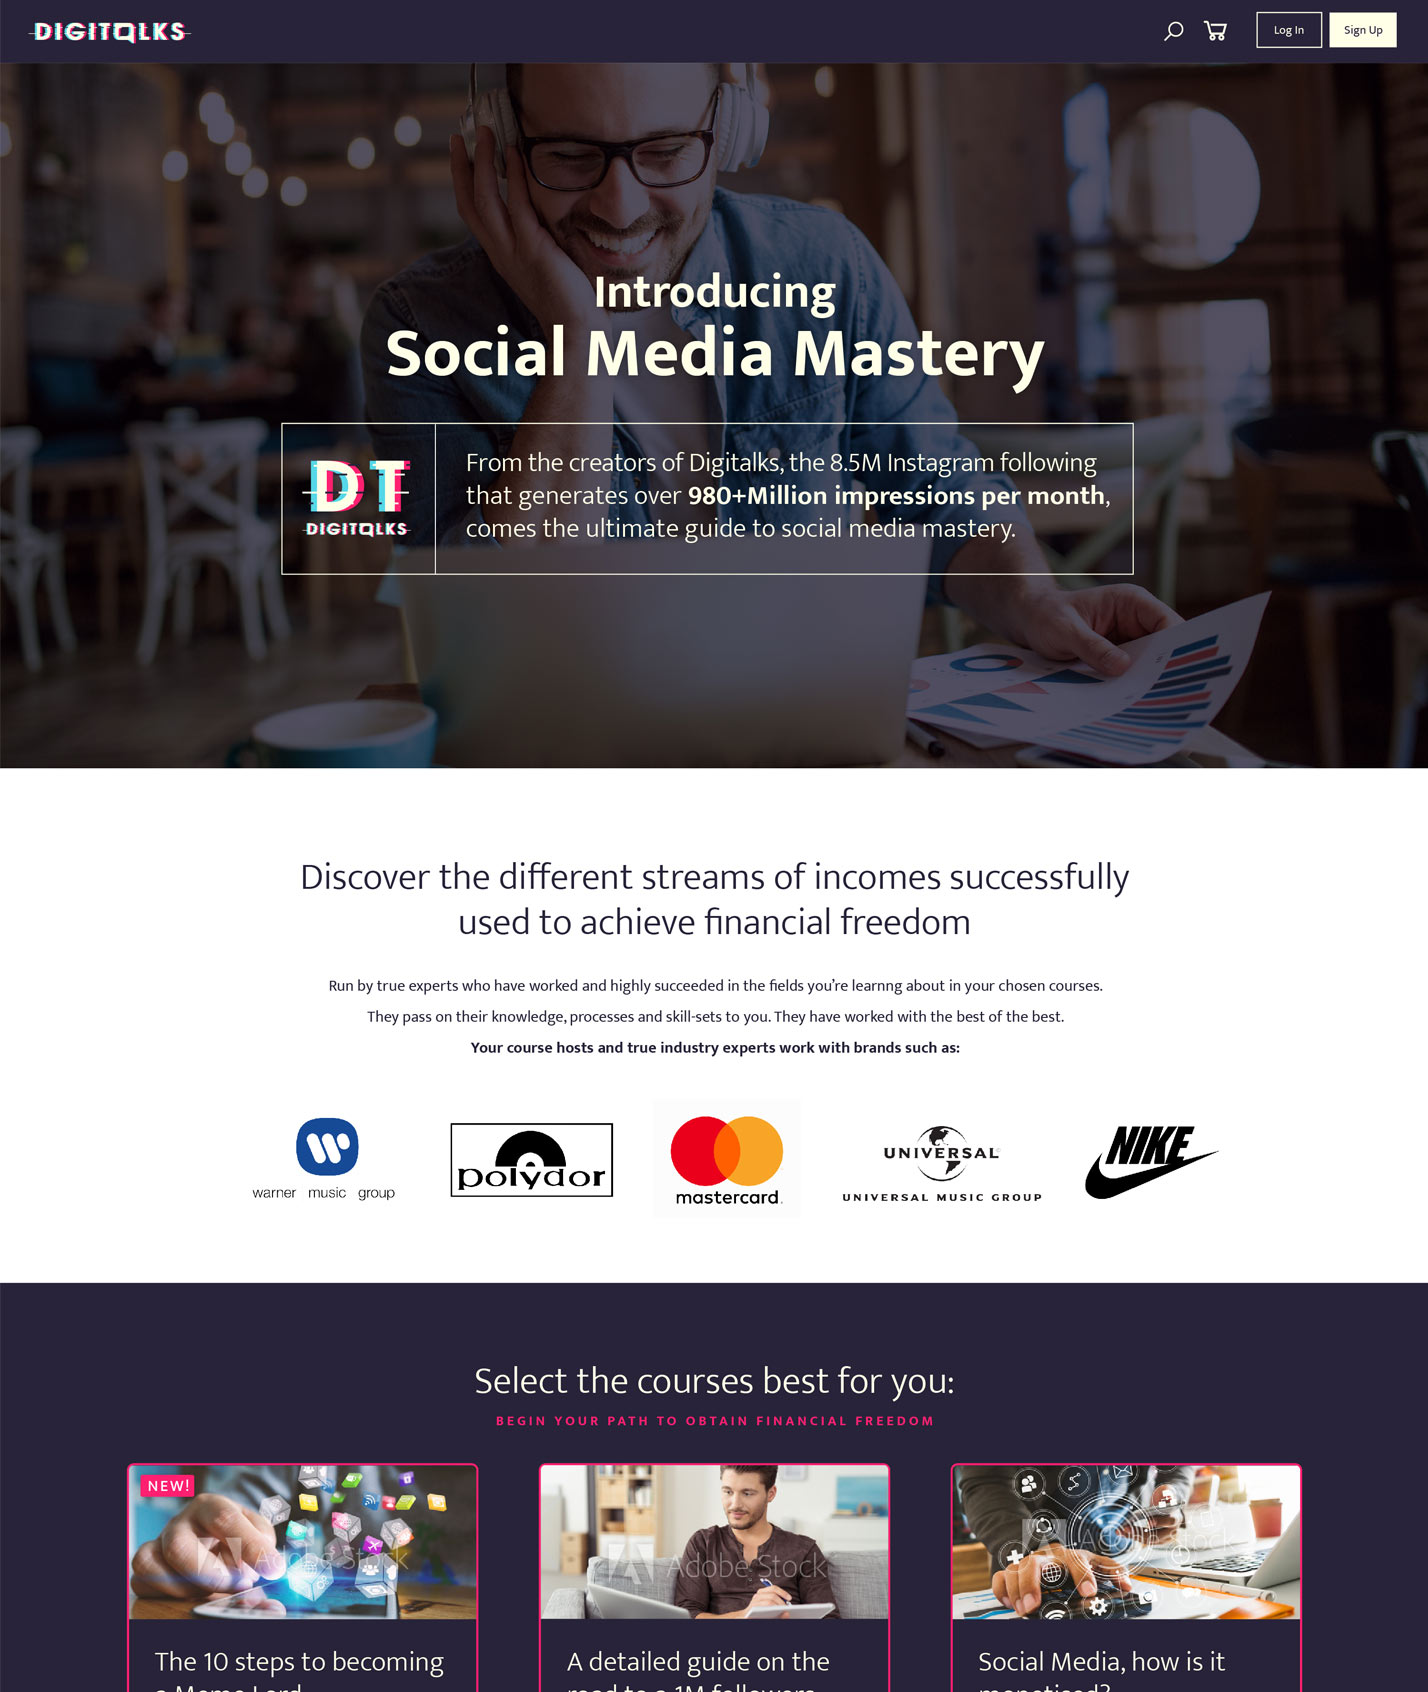 Digitalks website design by Ever Increasing Circles